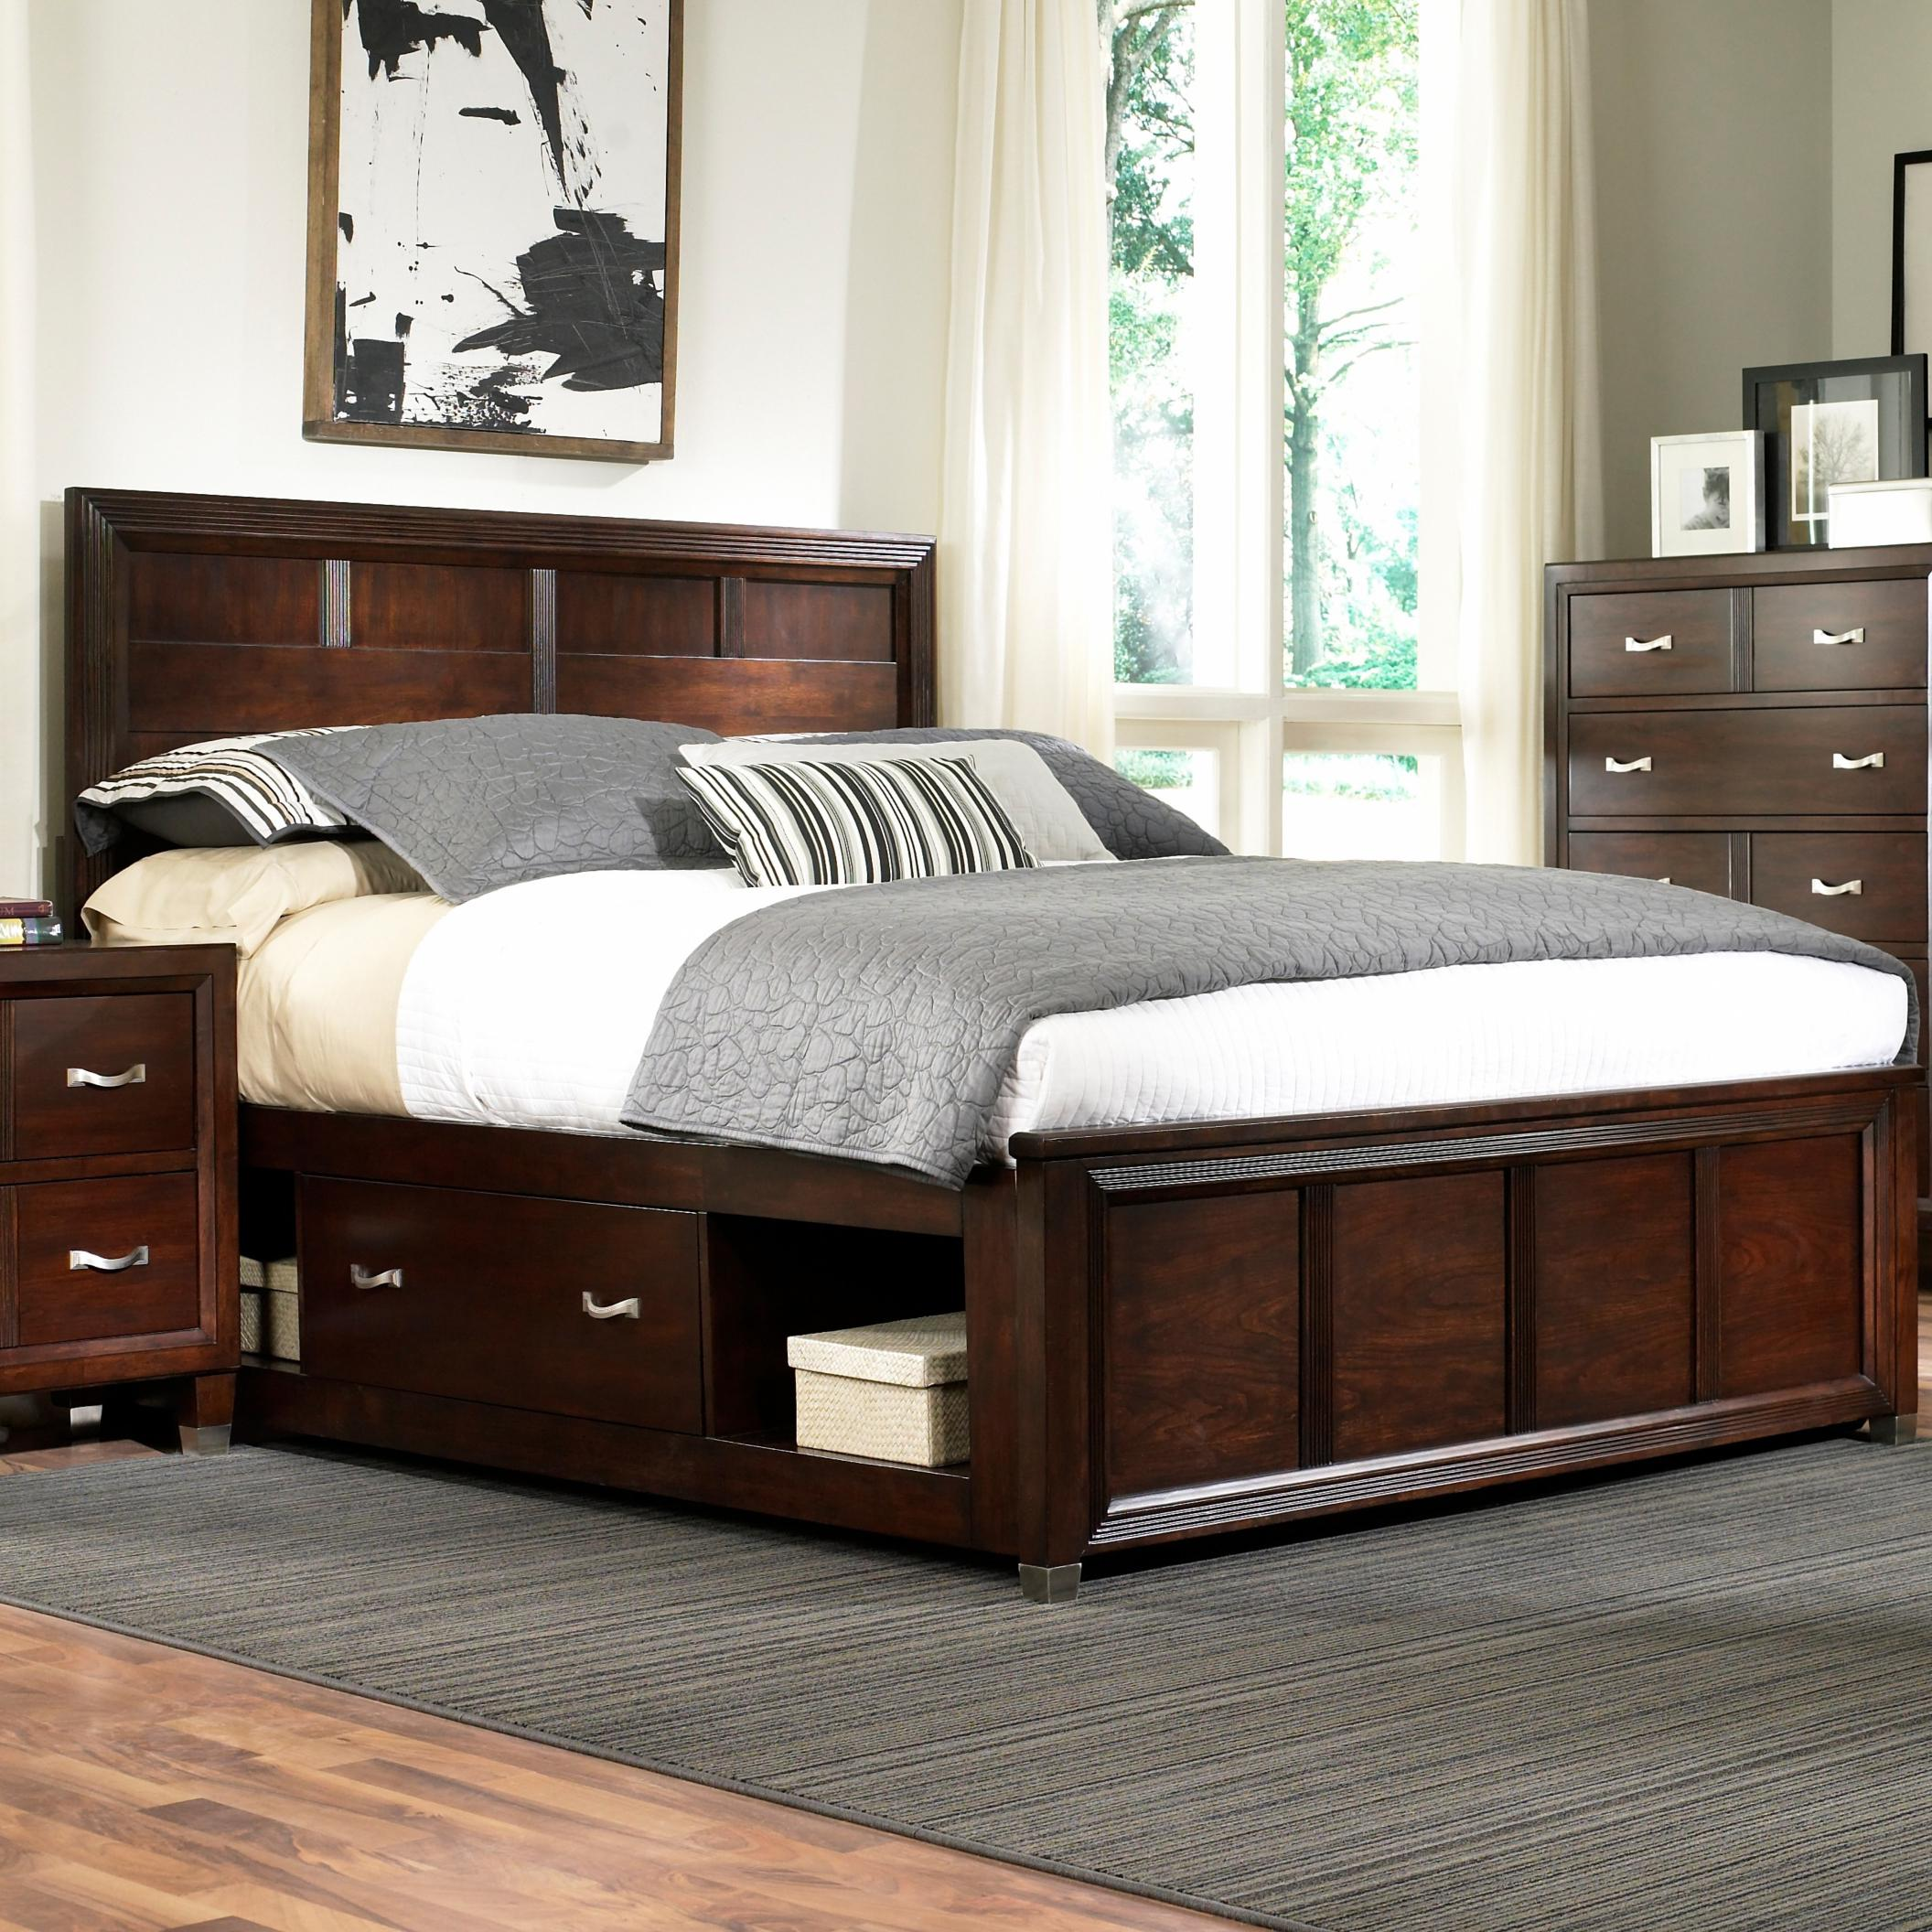 Broyhill Furniture Eastlake 2 Queen Captain\'s Bed with Single ...